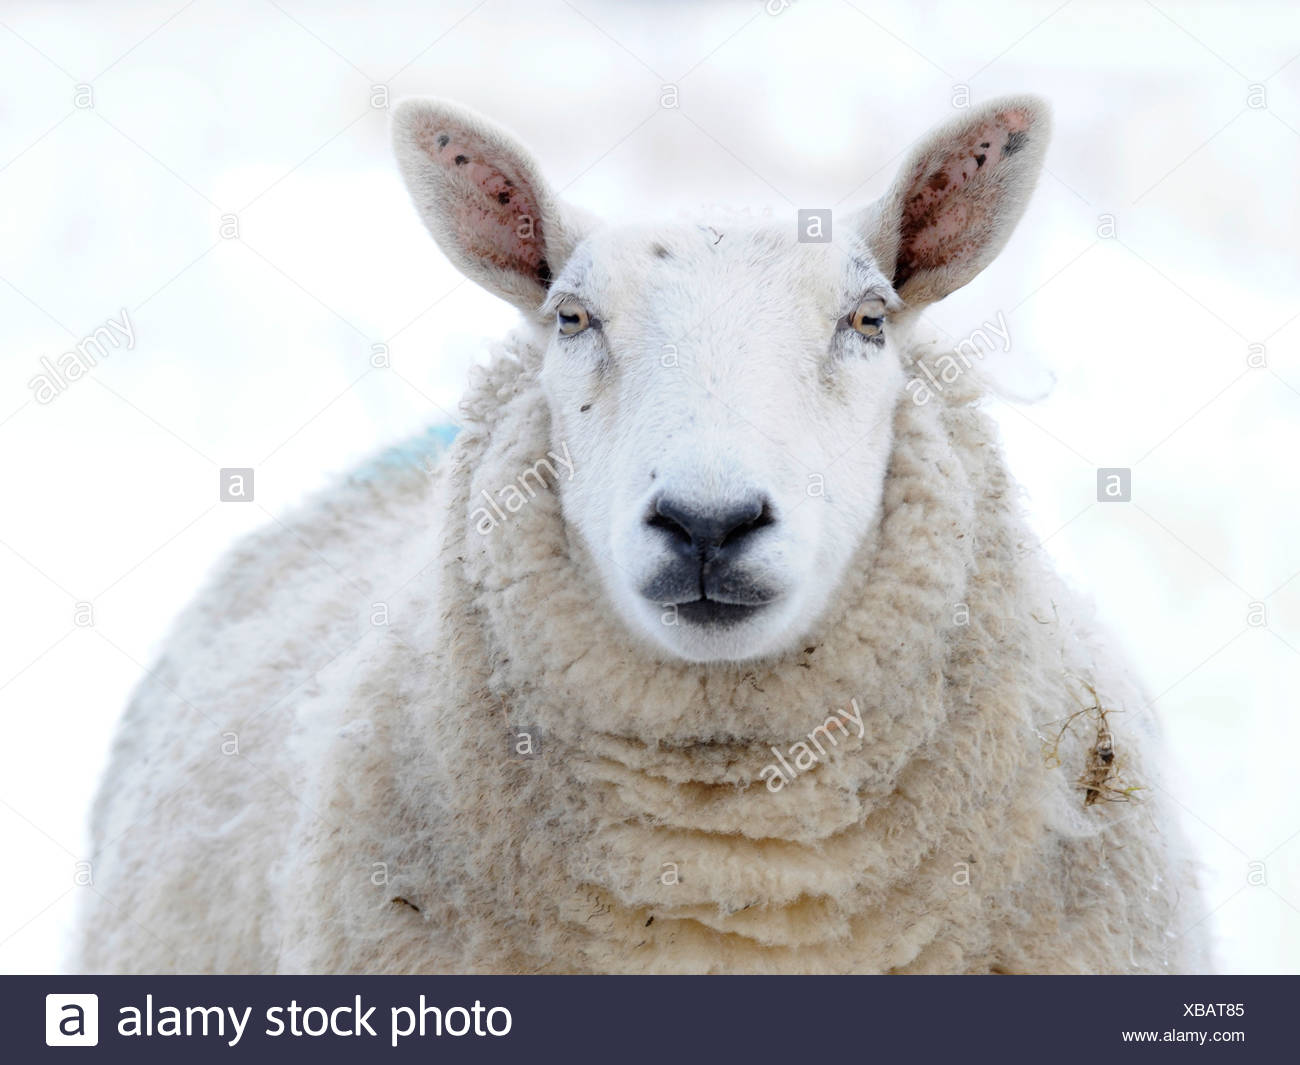 A white faced sheep photographed in the snow - Stock Image